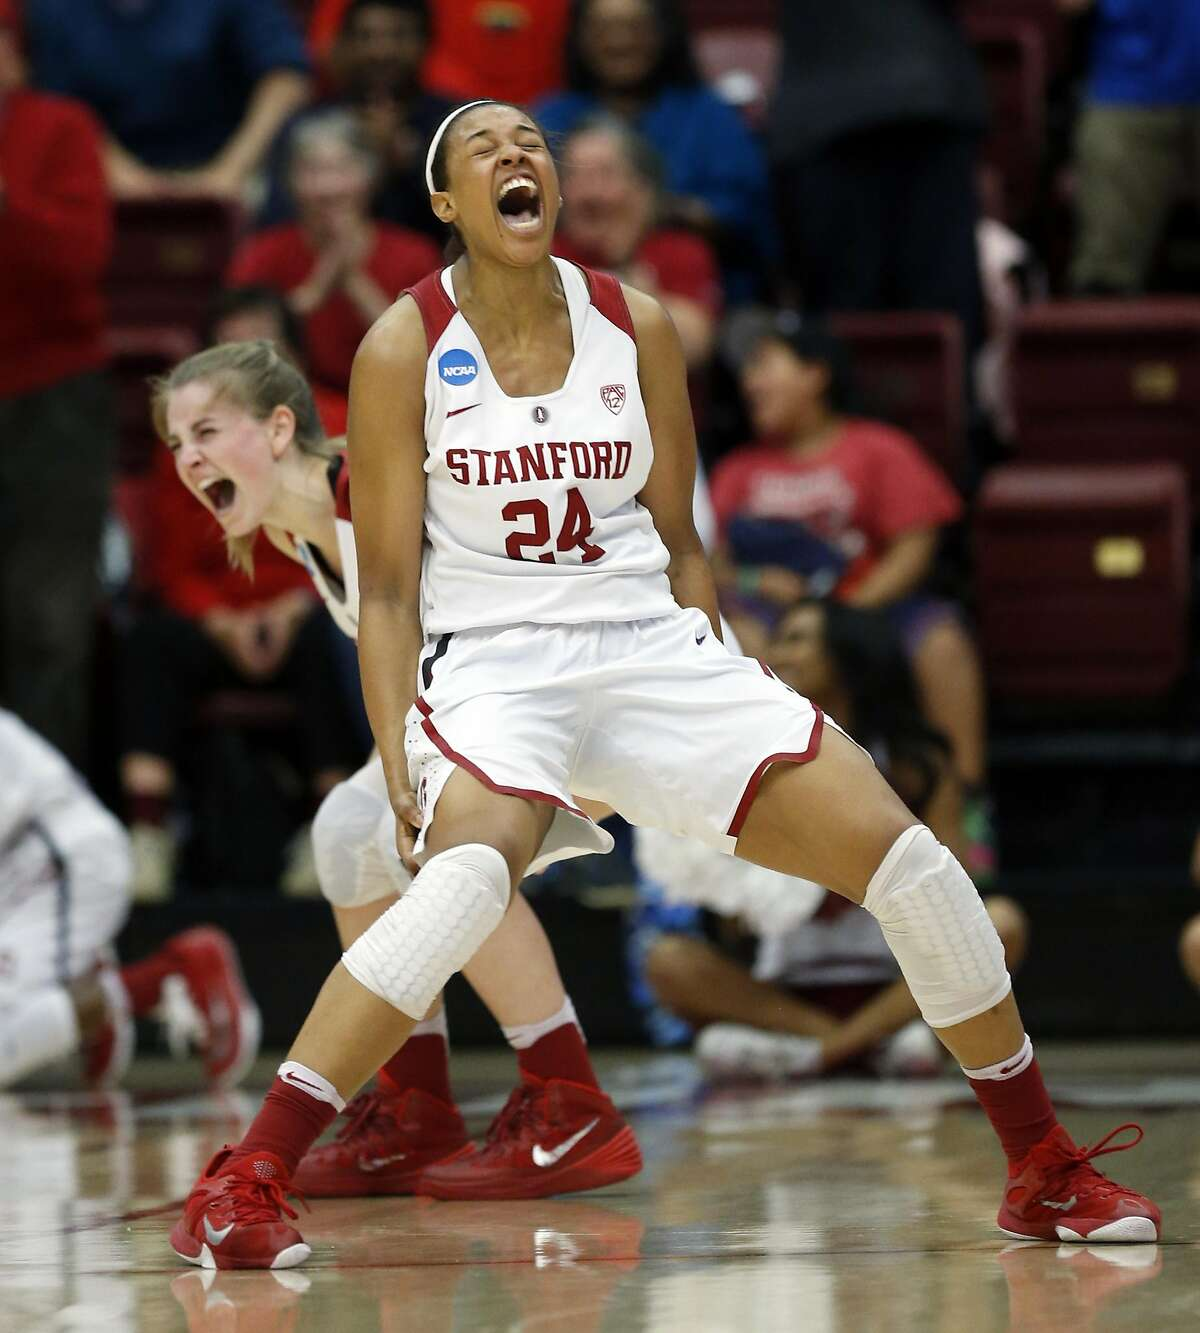 Stanford's Erica McCall (24) and Karlie Samuelson celebrate Lili Thompson's basket and subsequent go-ahead free throw in final seconds of Stanford's 66-65 win over South Dakota State in 2016 NCAA Division 1 Women's Basketball Tournament game in Stanford, Calif., on Monday, March 21, 2016.